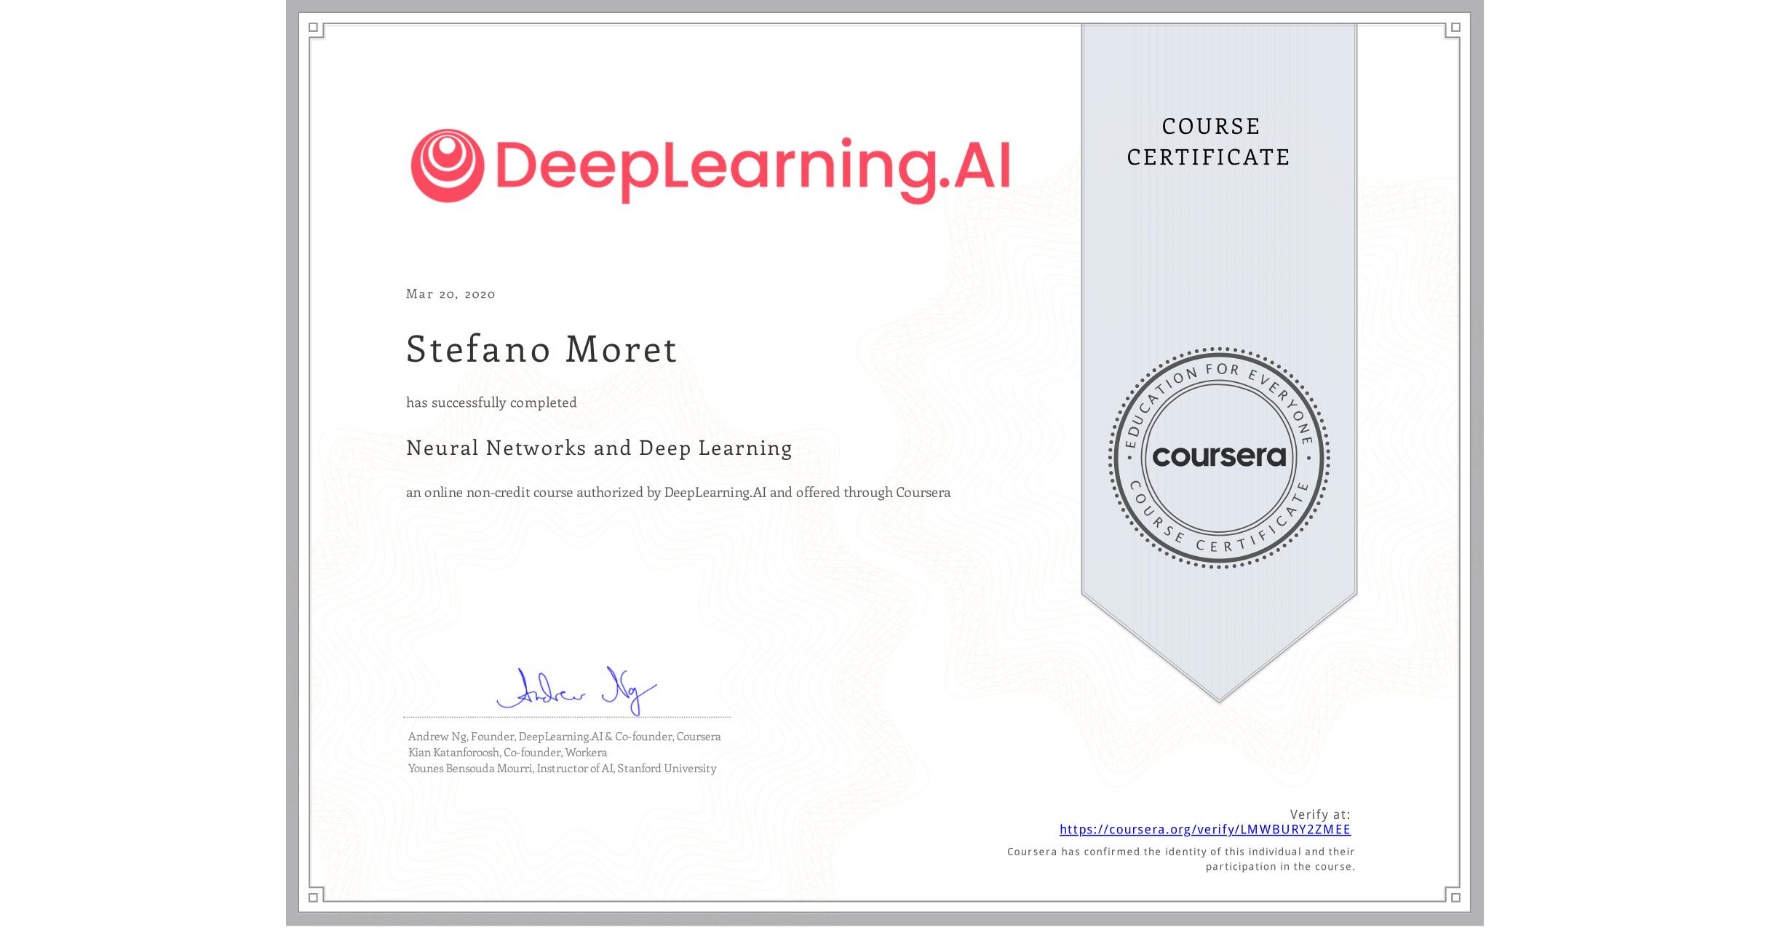 View certificate for Stefano Moret, Neural Networks and Deep Learning, an online non-credit course authorized by DeepLearning.AI and offered through Coursera